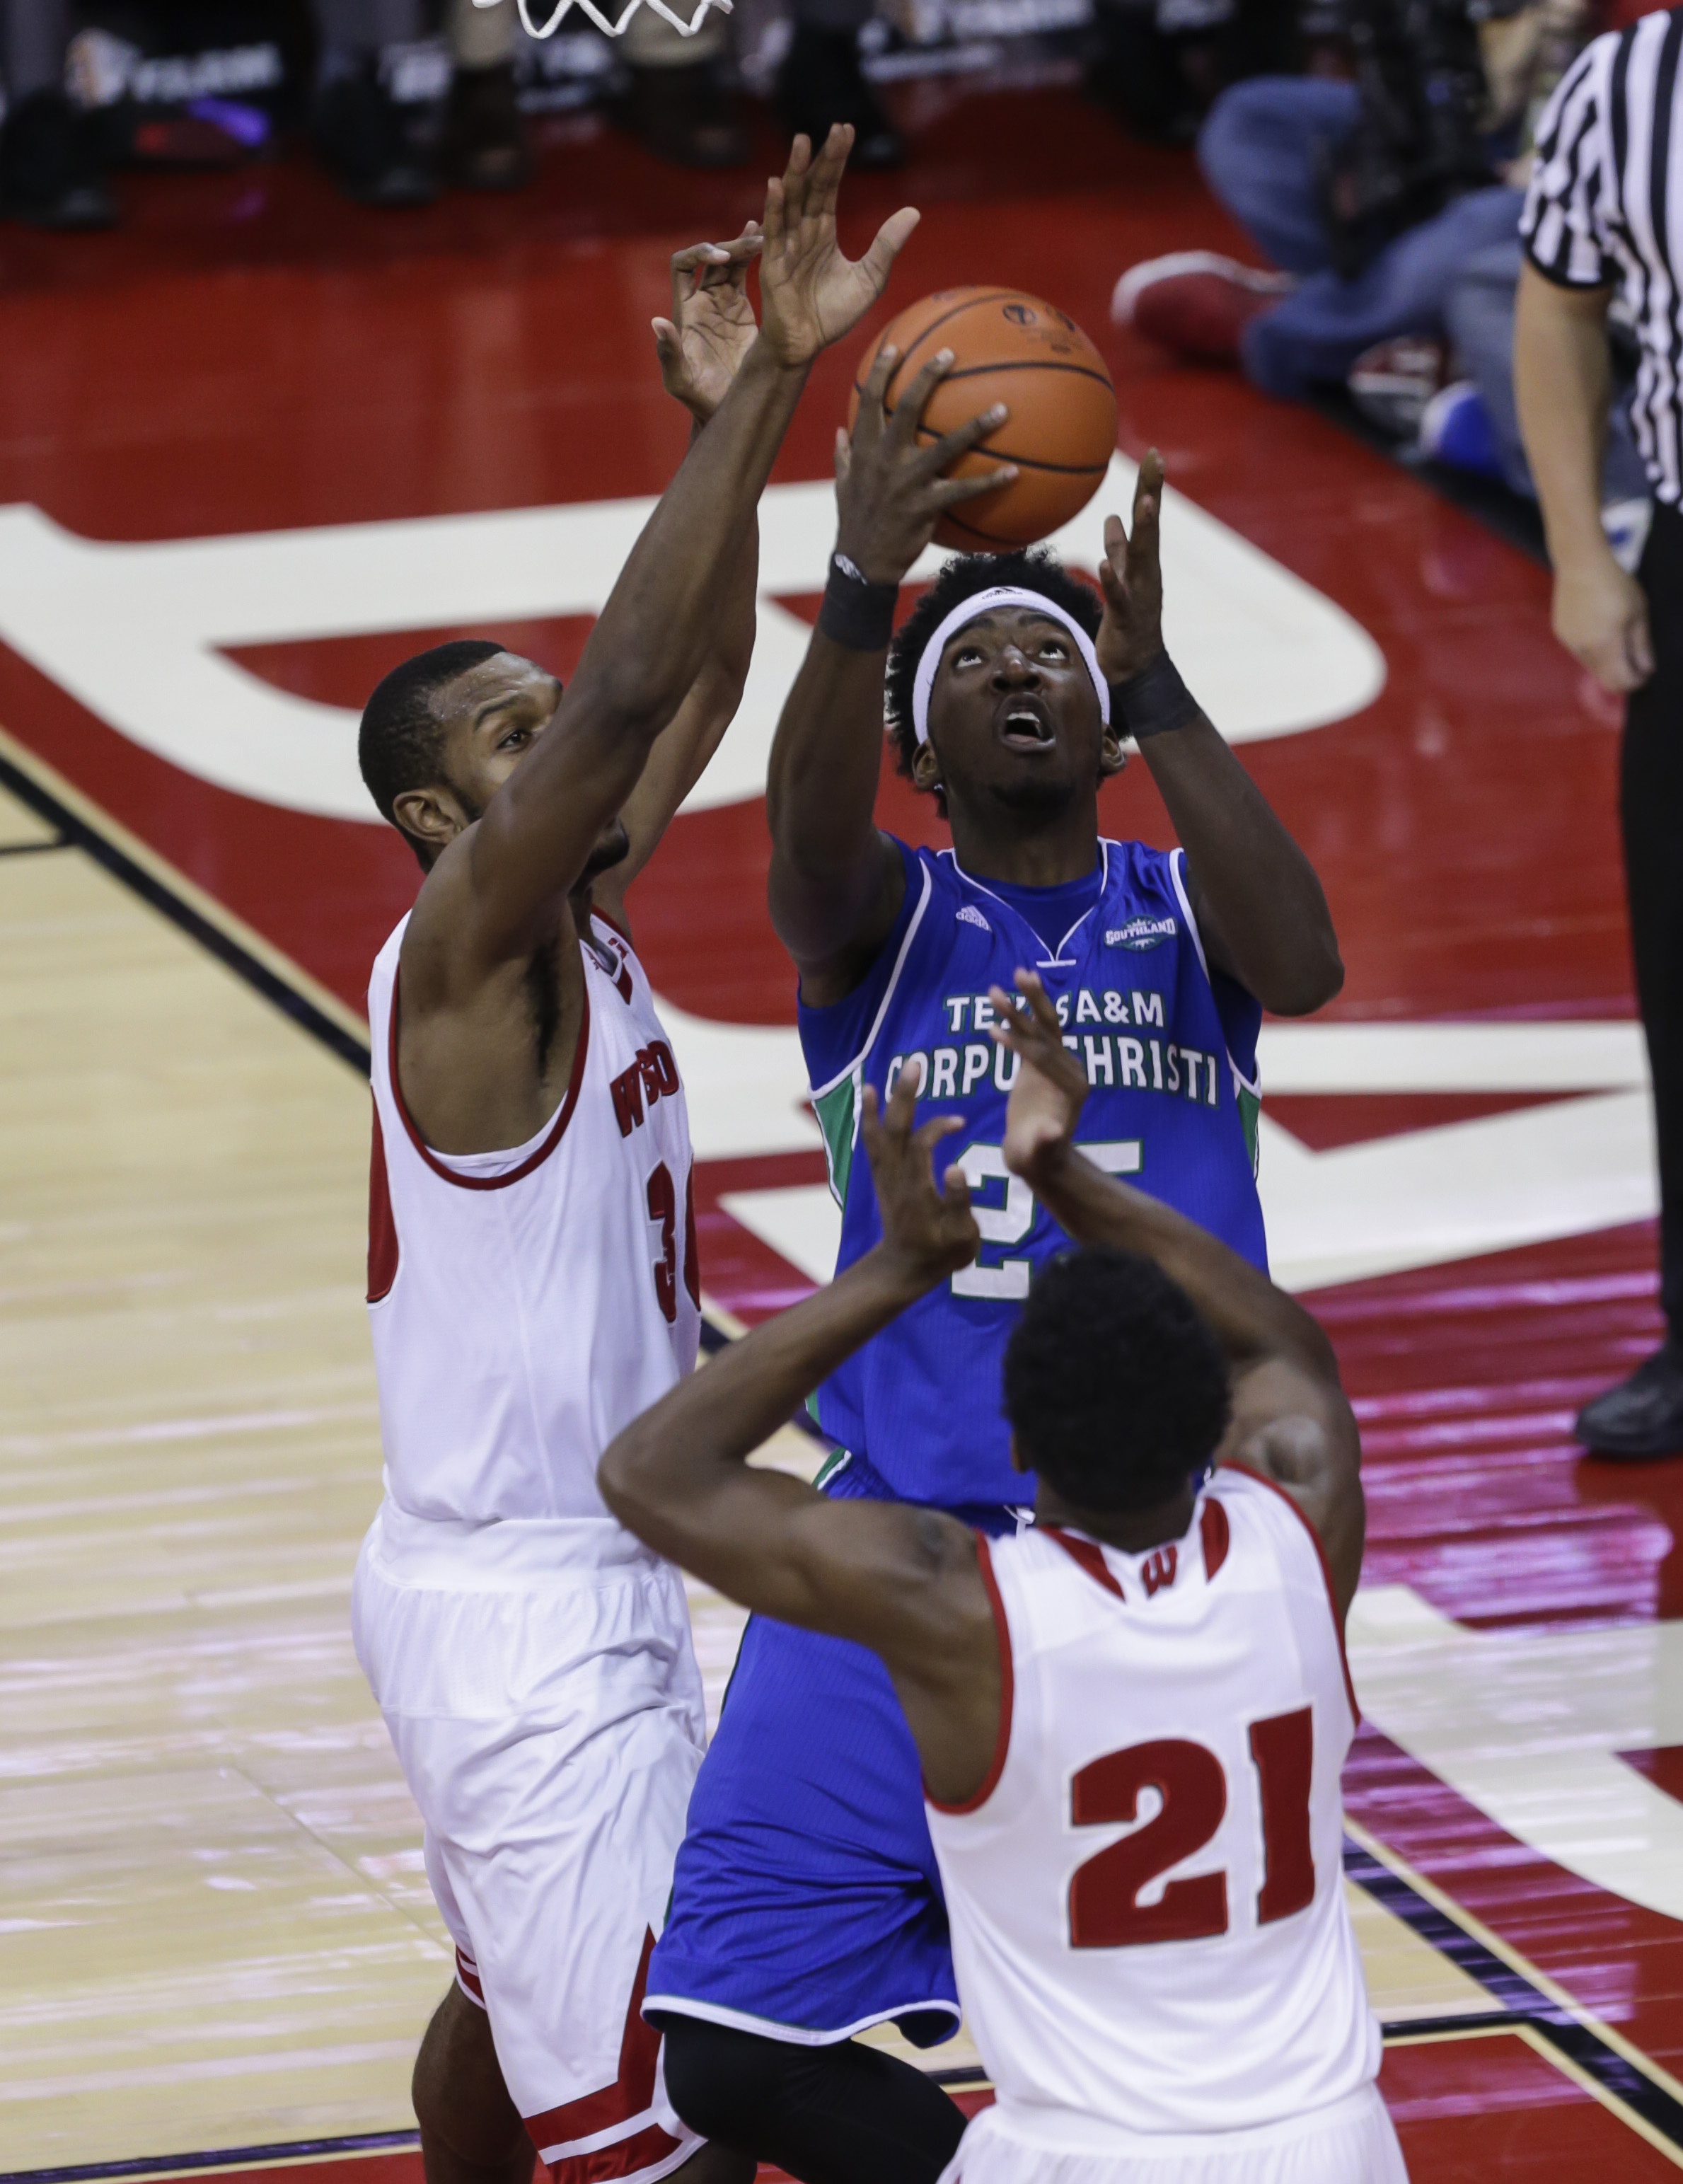 Texas A&M Corpus Christi's Rashawn Thomas (25) shoots against Wisconsin's Vitto Brown, left, and Khalil Iverson (21) during the first half of an NCAA college basketball game Tuesday, Dec. 15, 2015, in Madison, Wis. (AP Photo/Andy Manis)